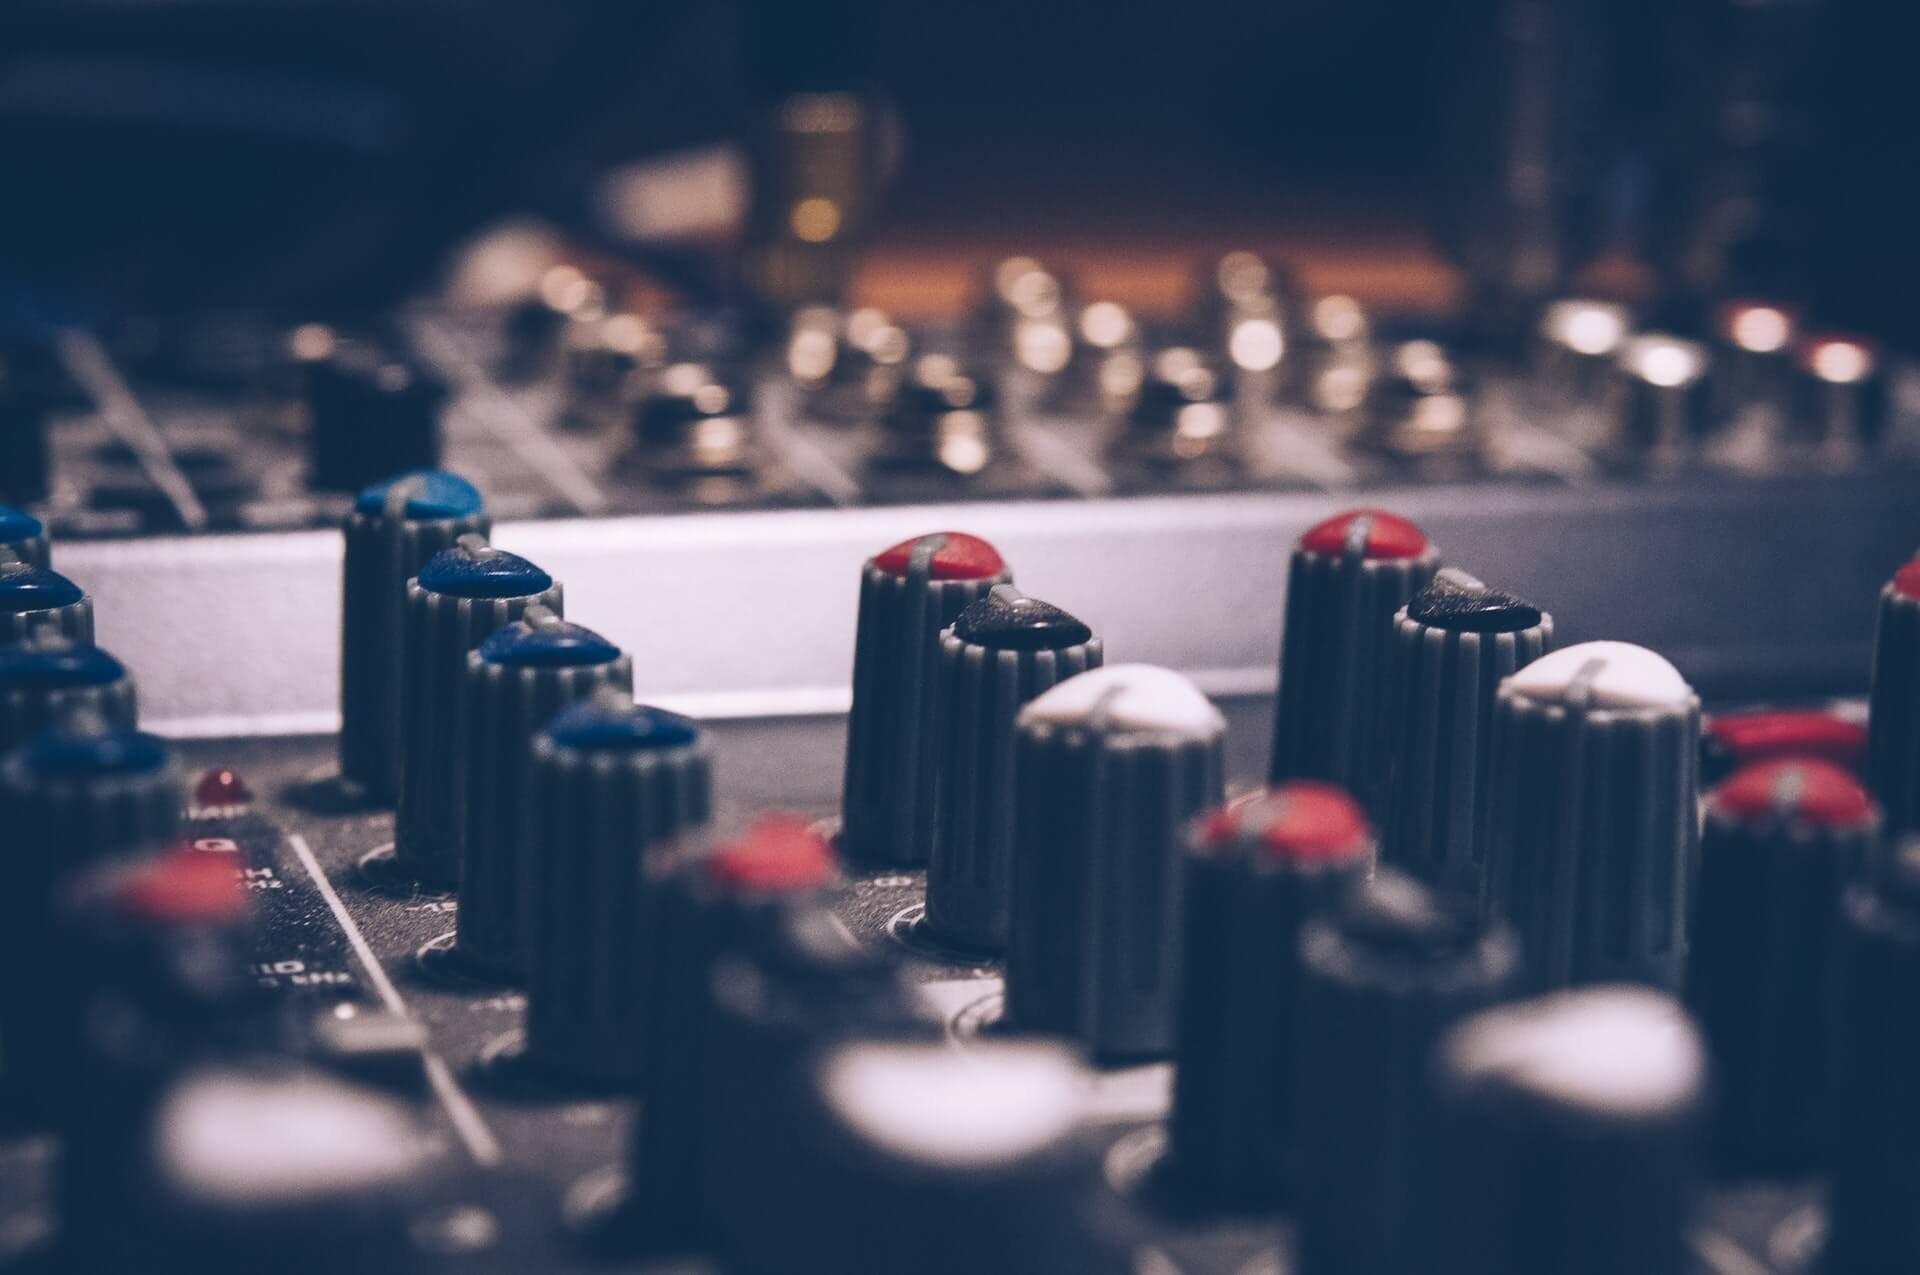 How to make searching for music studios in Miami easy